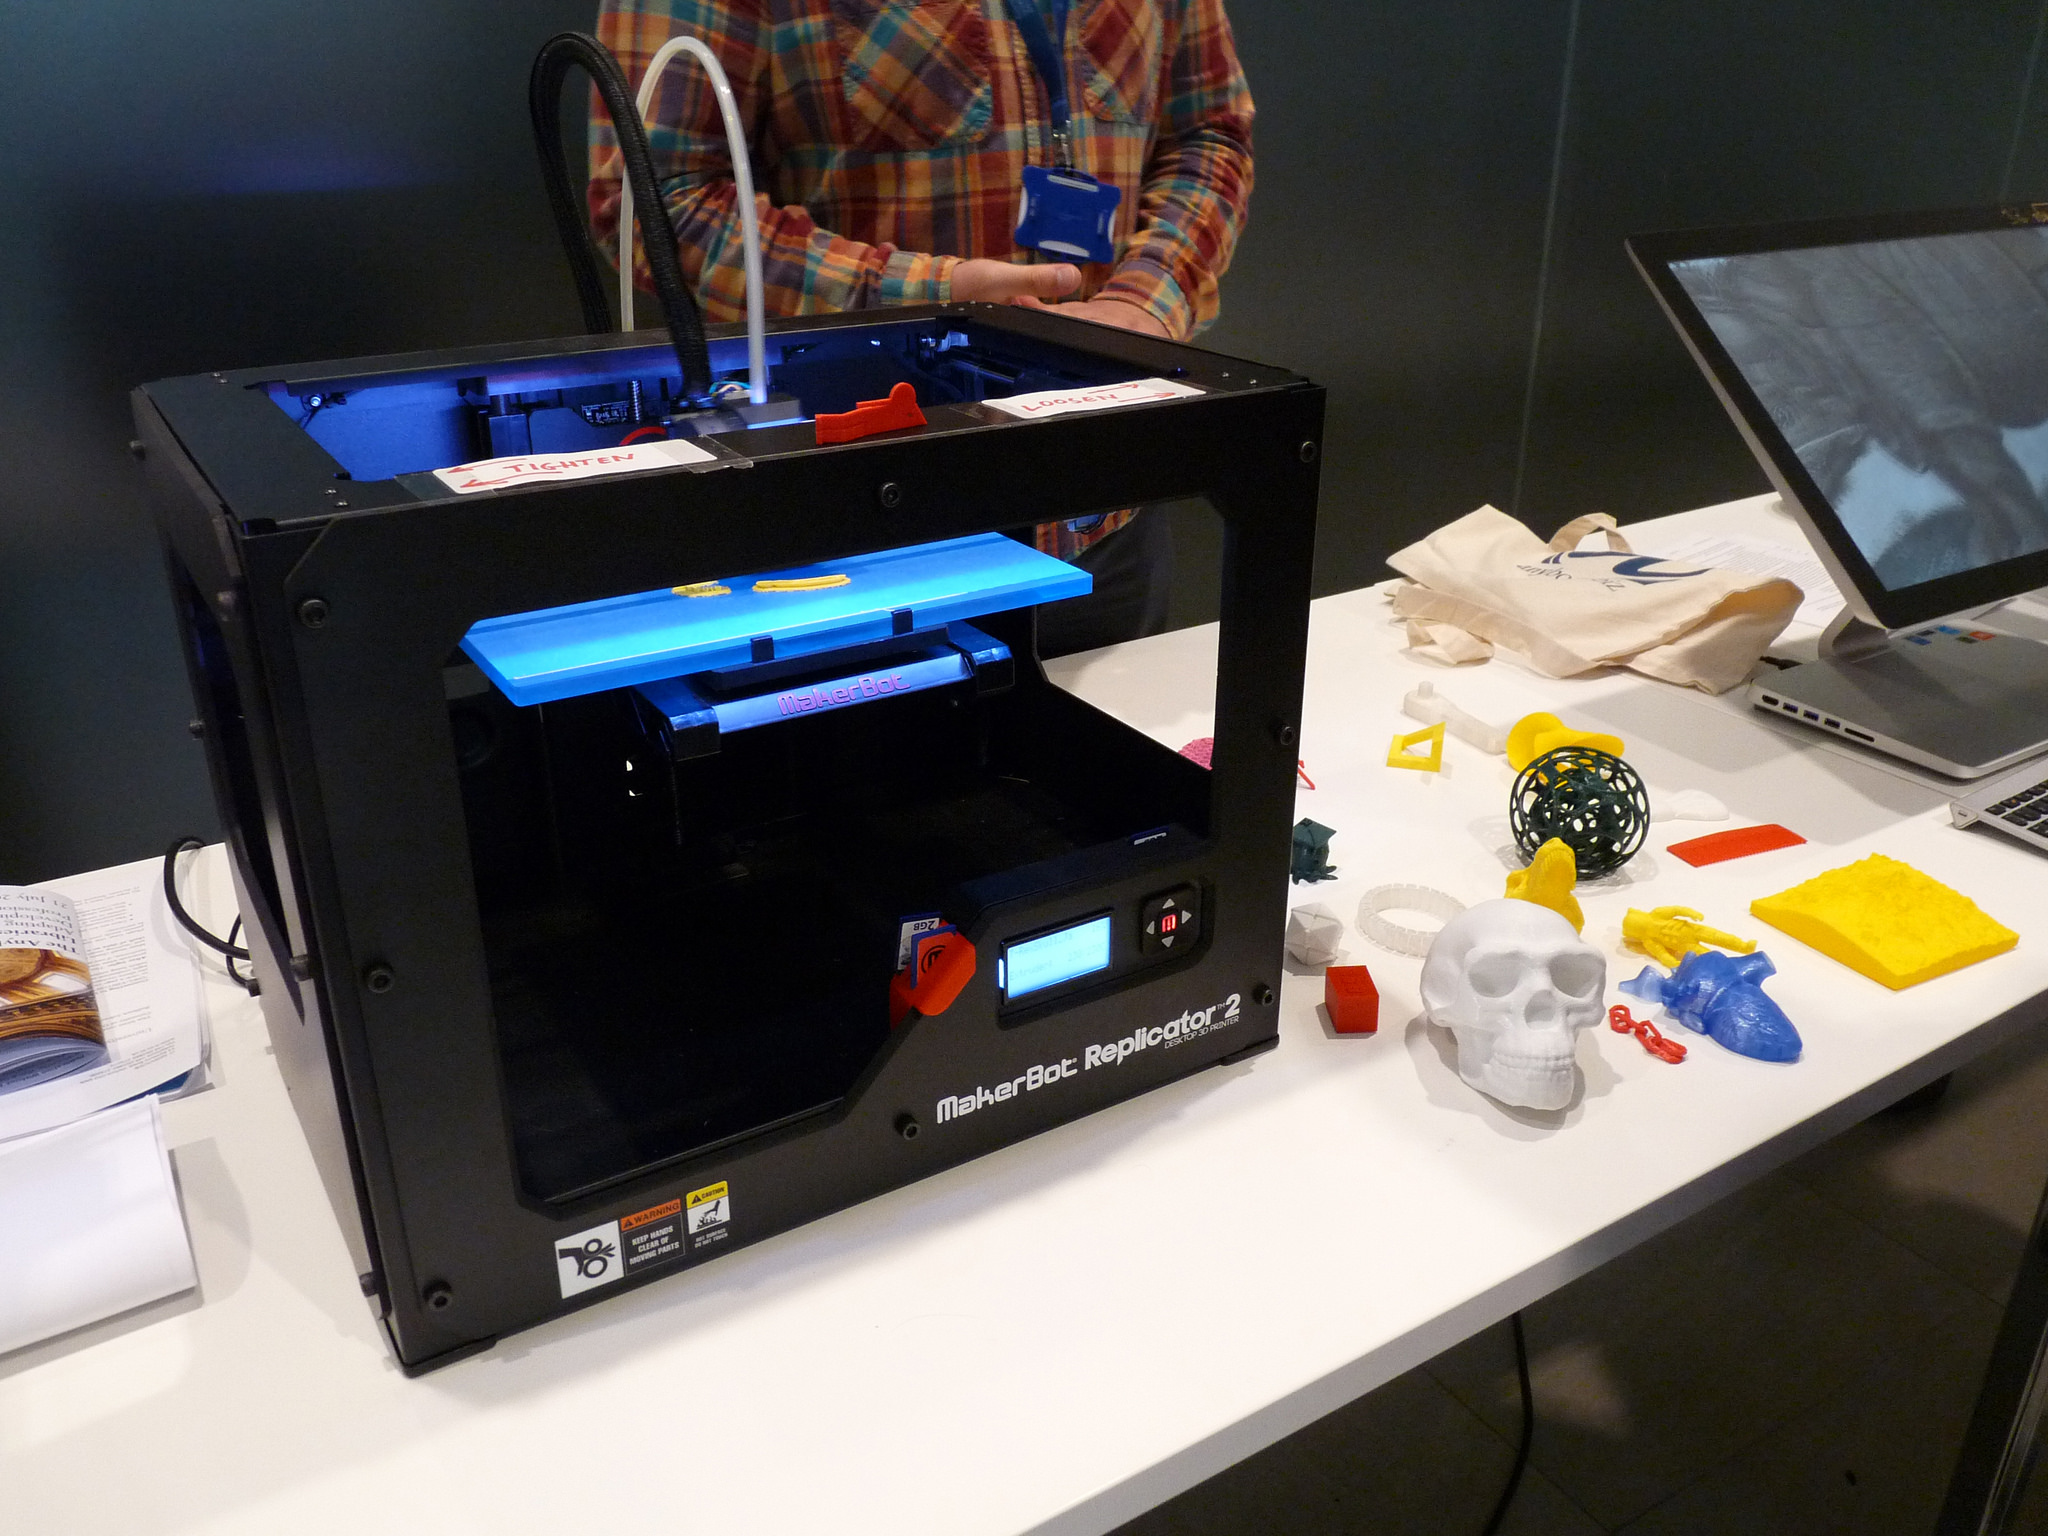 Are you 3D printing yet?